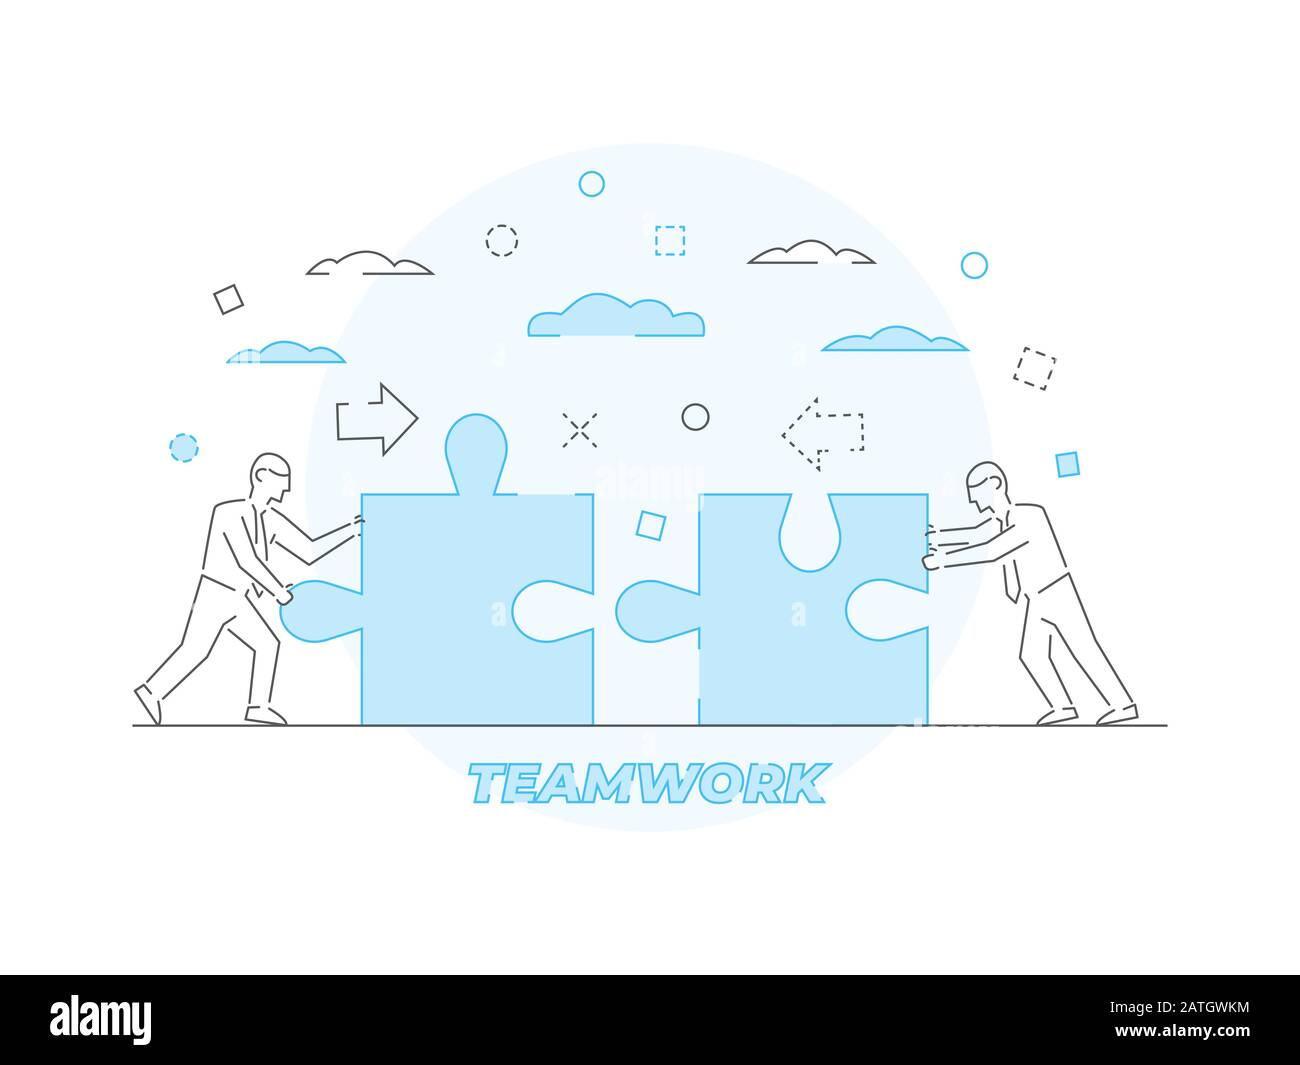 Teamwork Business concept Vector illustration in linear style Stock Vector